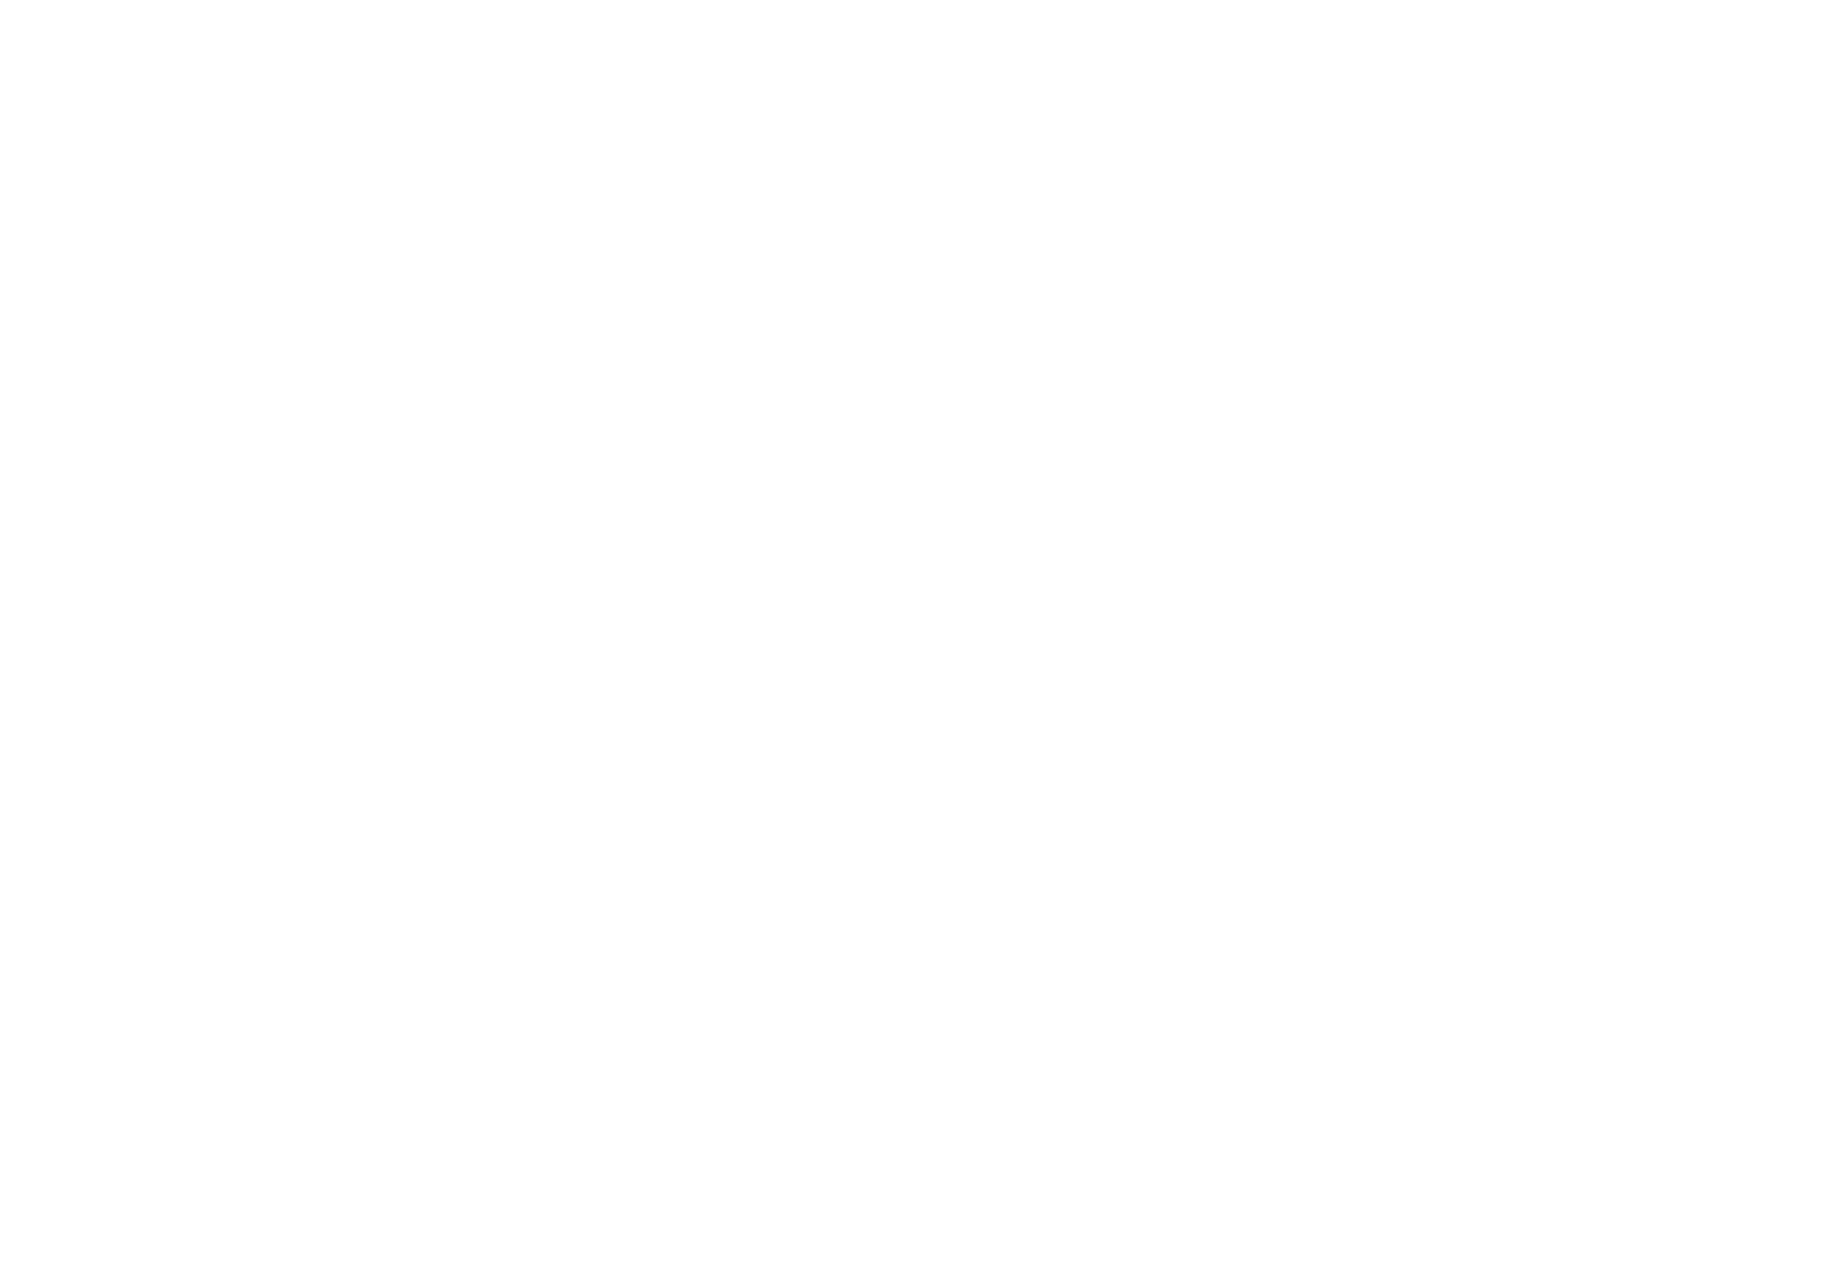 For the people who will make the future happen